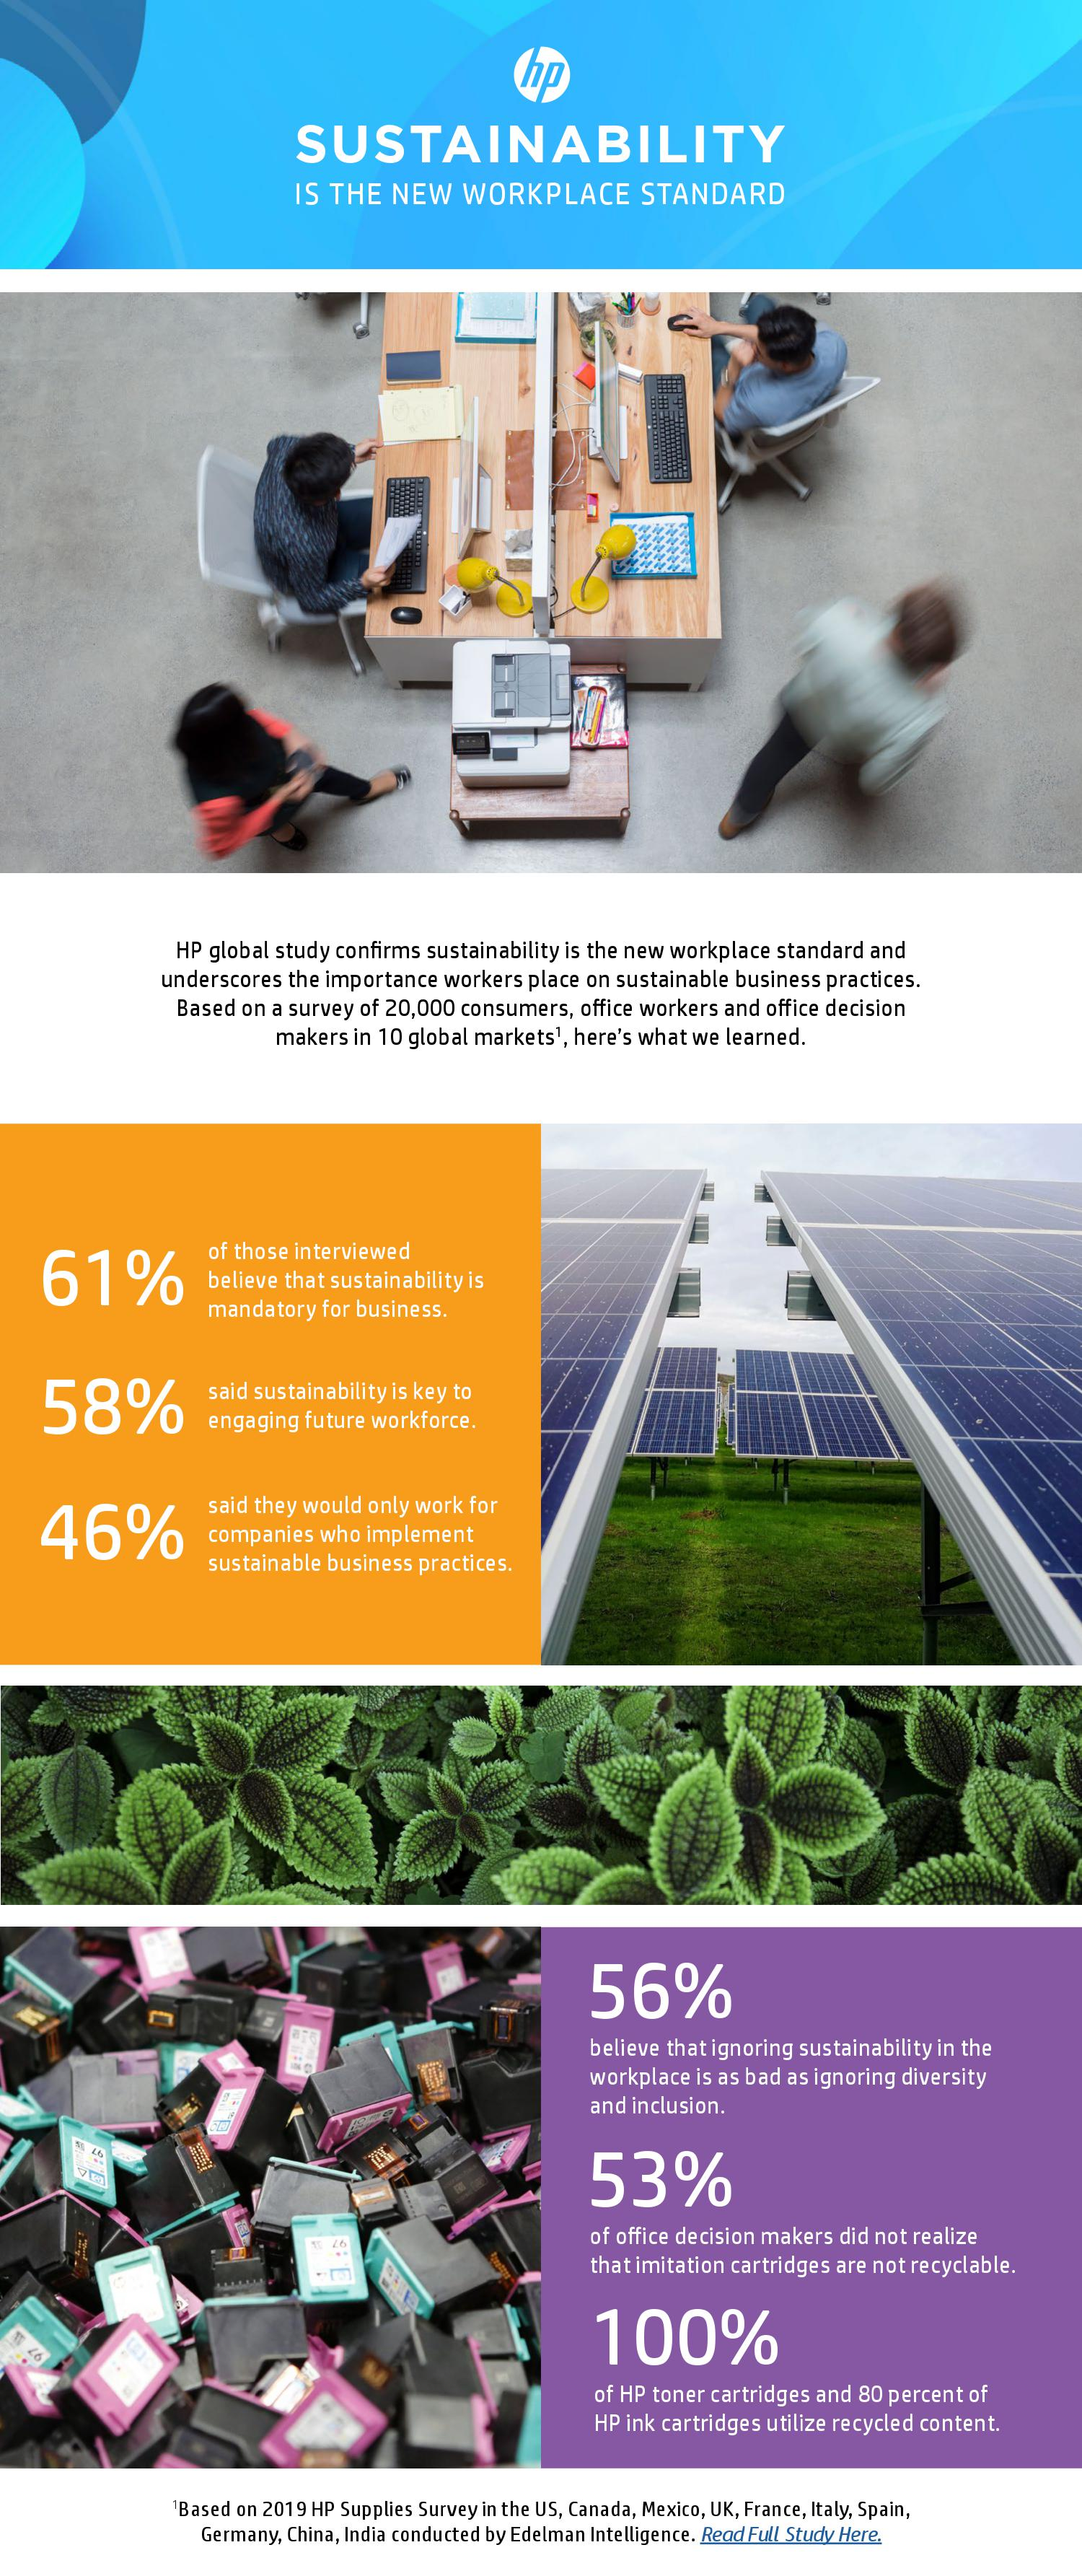 Sustainability is the New Workplace Standard